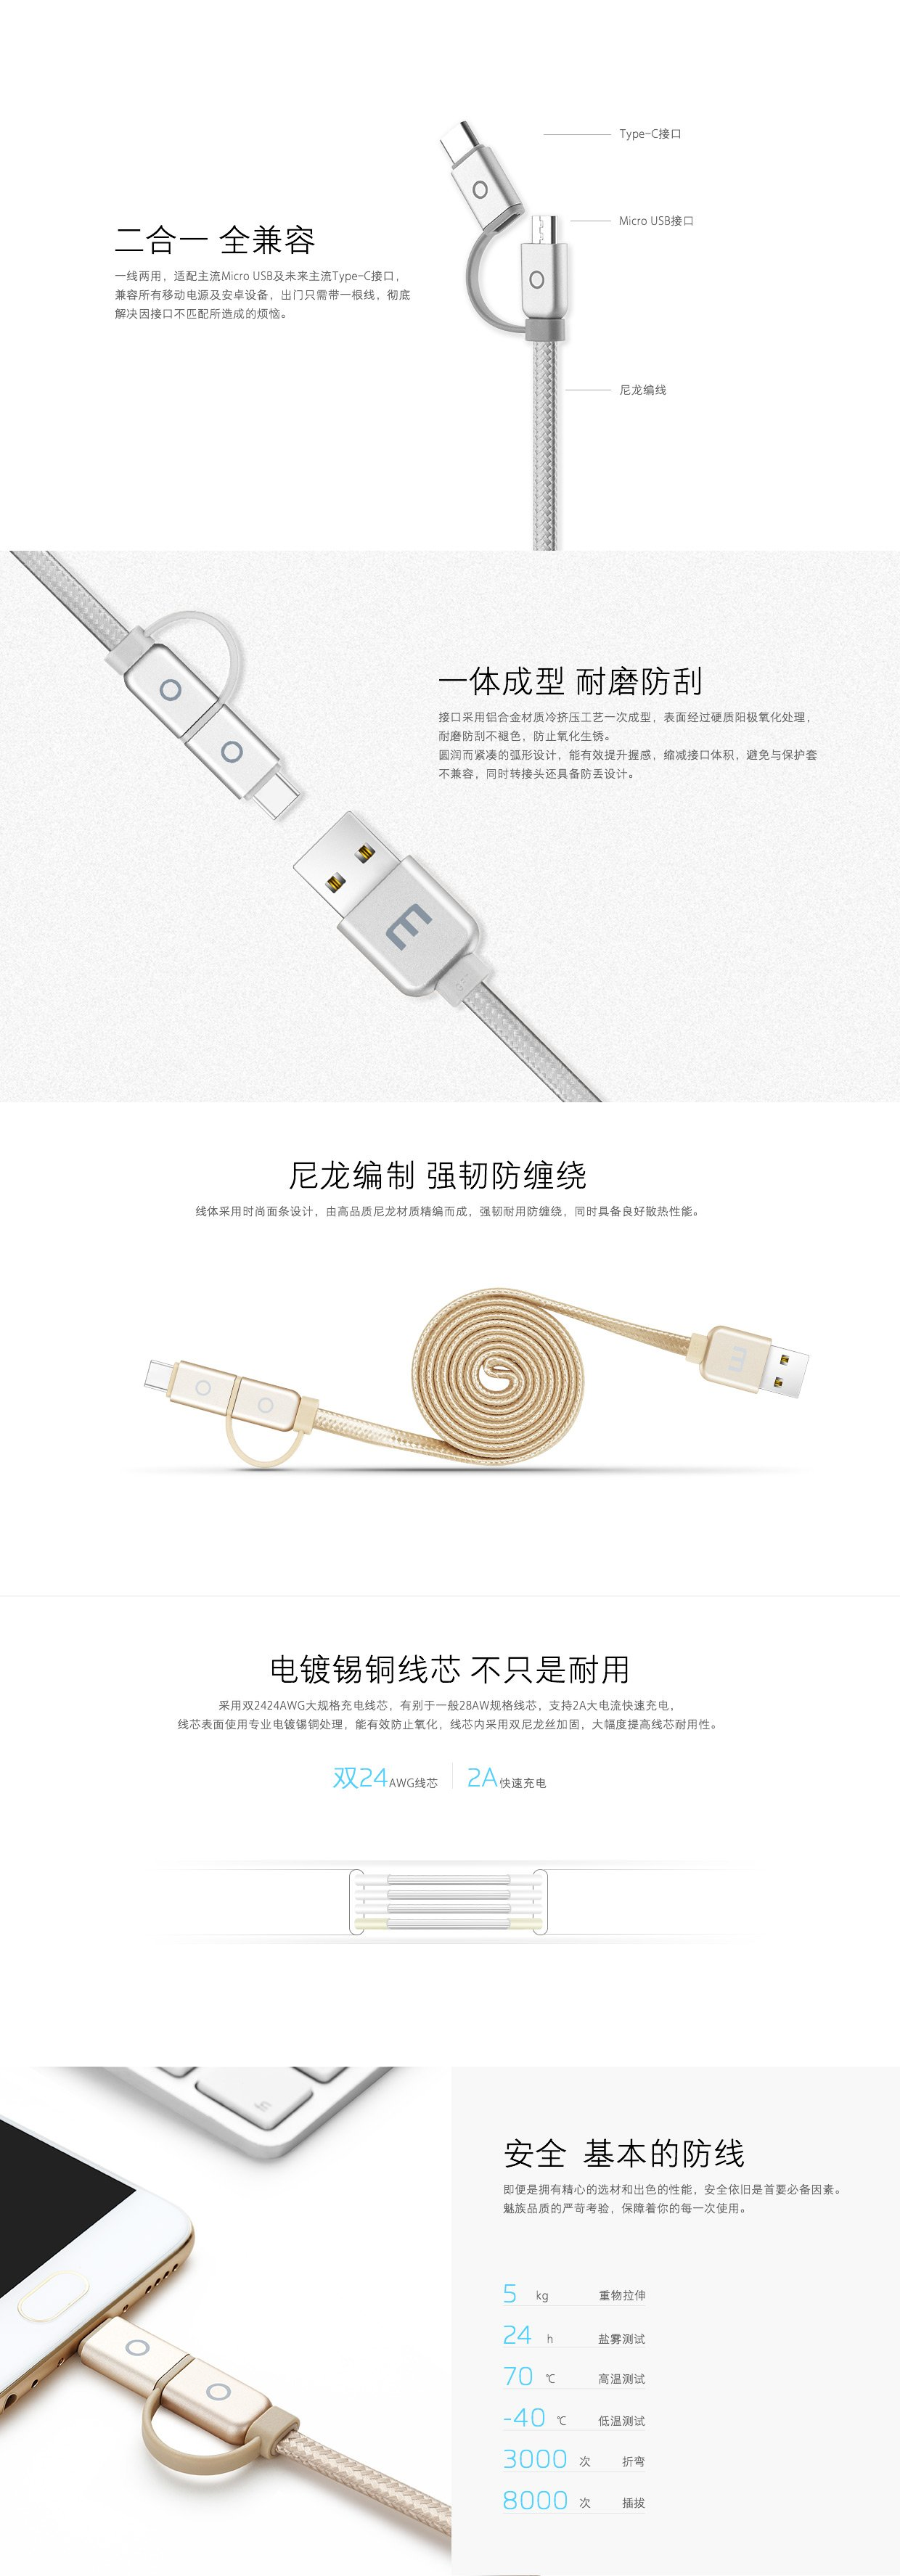 meizu-usb-type-c-micro-usb-2-in-1-cable_01